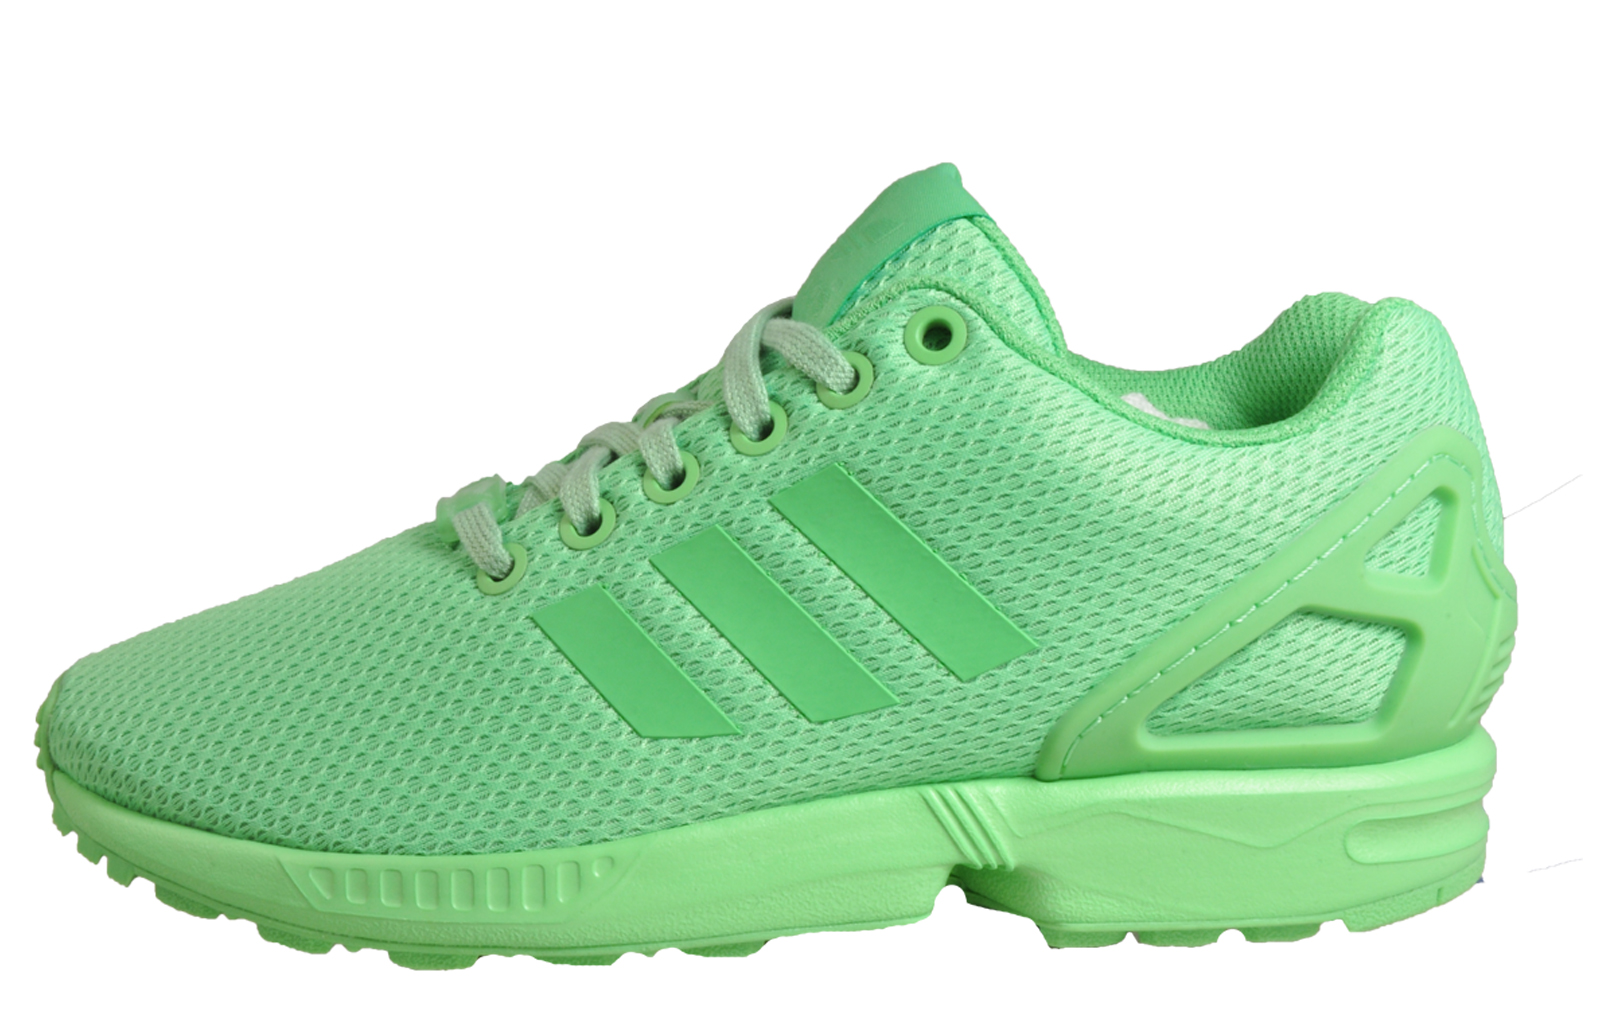 7d16f460e22b6 Adidas Originals ZX Flux Women s Classic Casual Gym Fitness Trainers Green